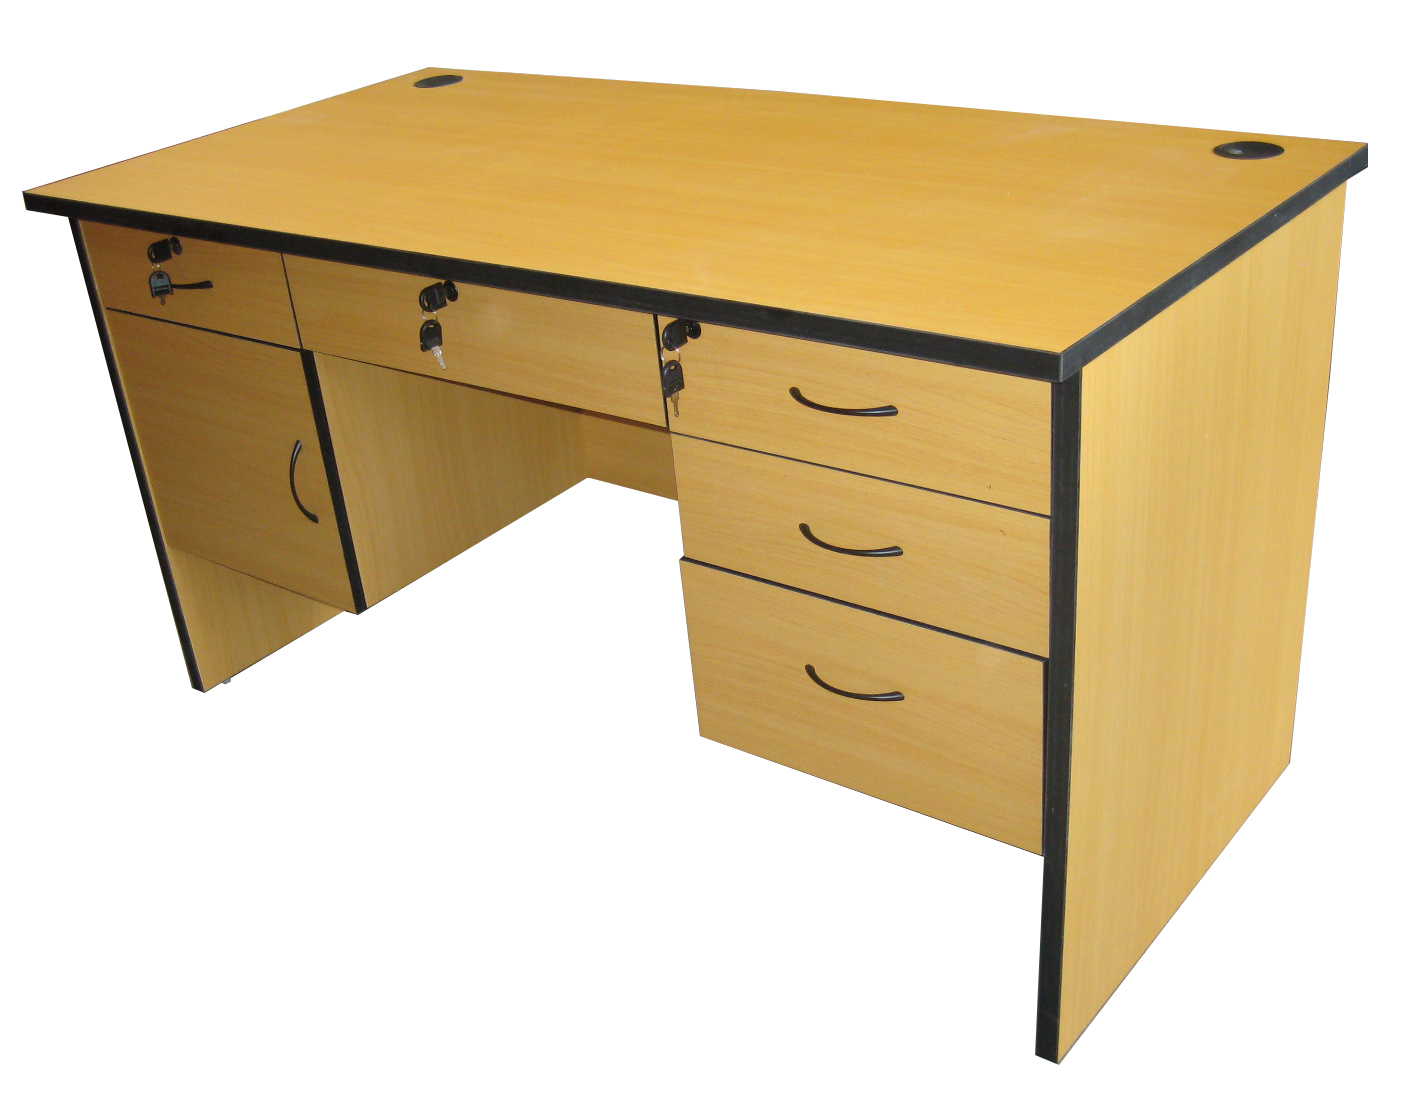 Merveilleux Soho BELGIUM Office Table W/ 6 Drawers, Groumet, Pvc Edging Colors: Black  Wallnut, Gray, Cherry, Wood Grain(140*70*75 Cm)